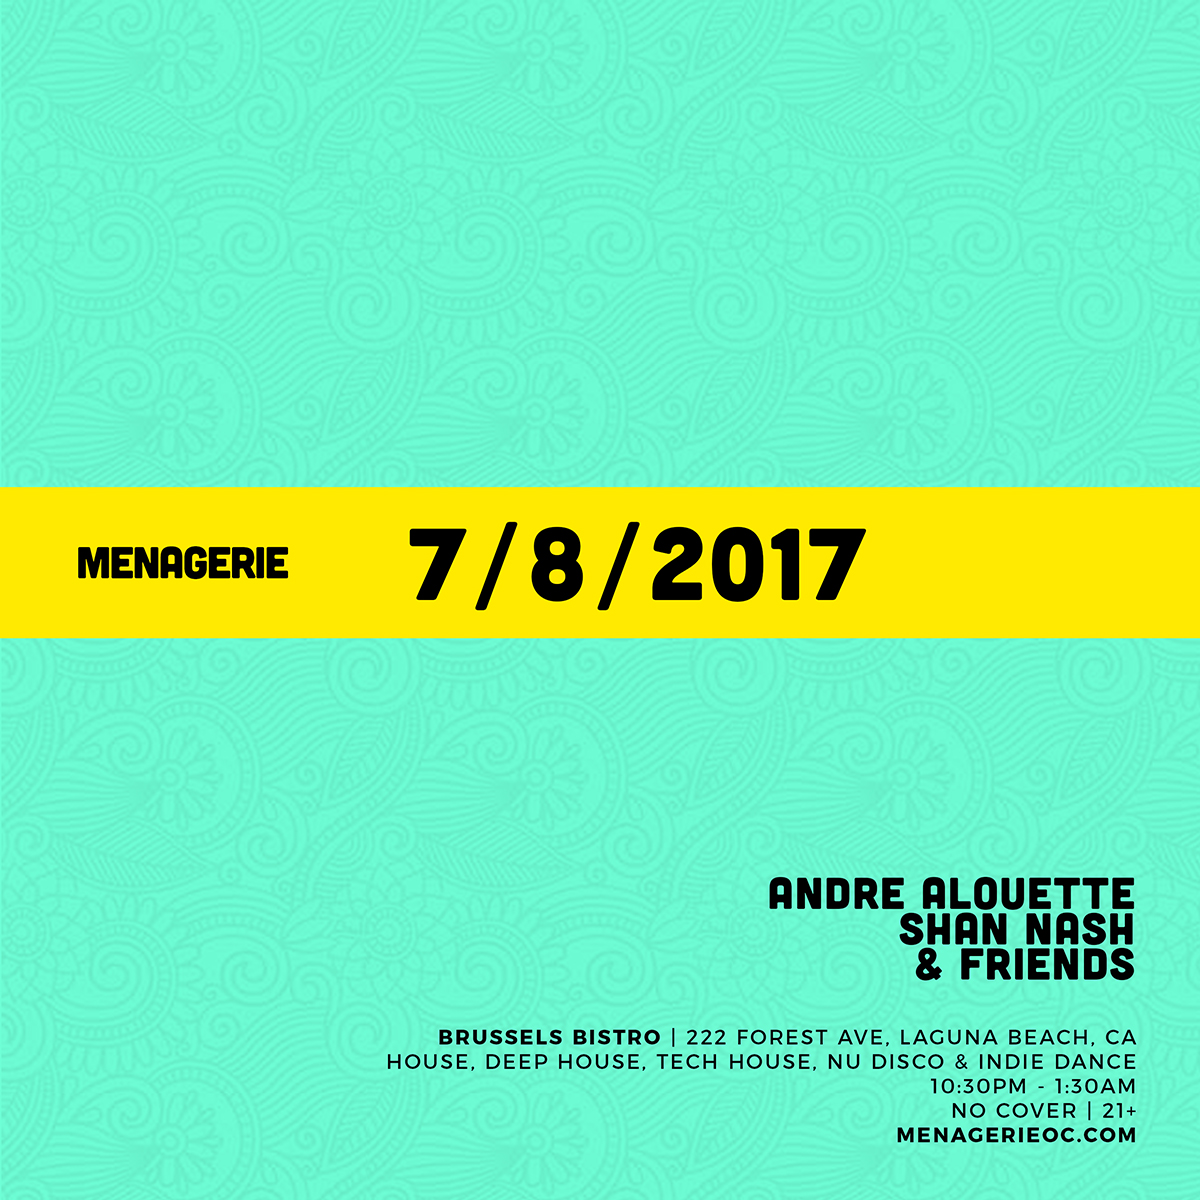 7-8-2017 Menagerie OC at Brussels flyer